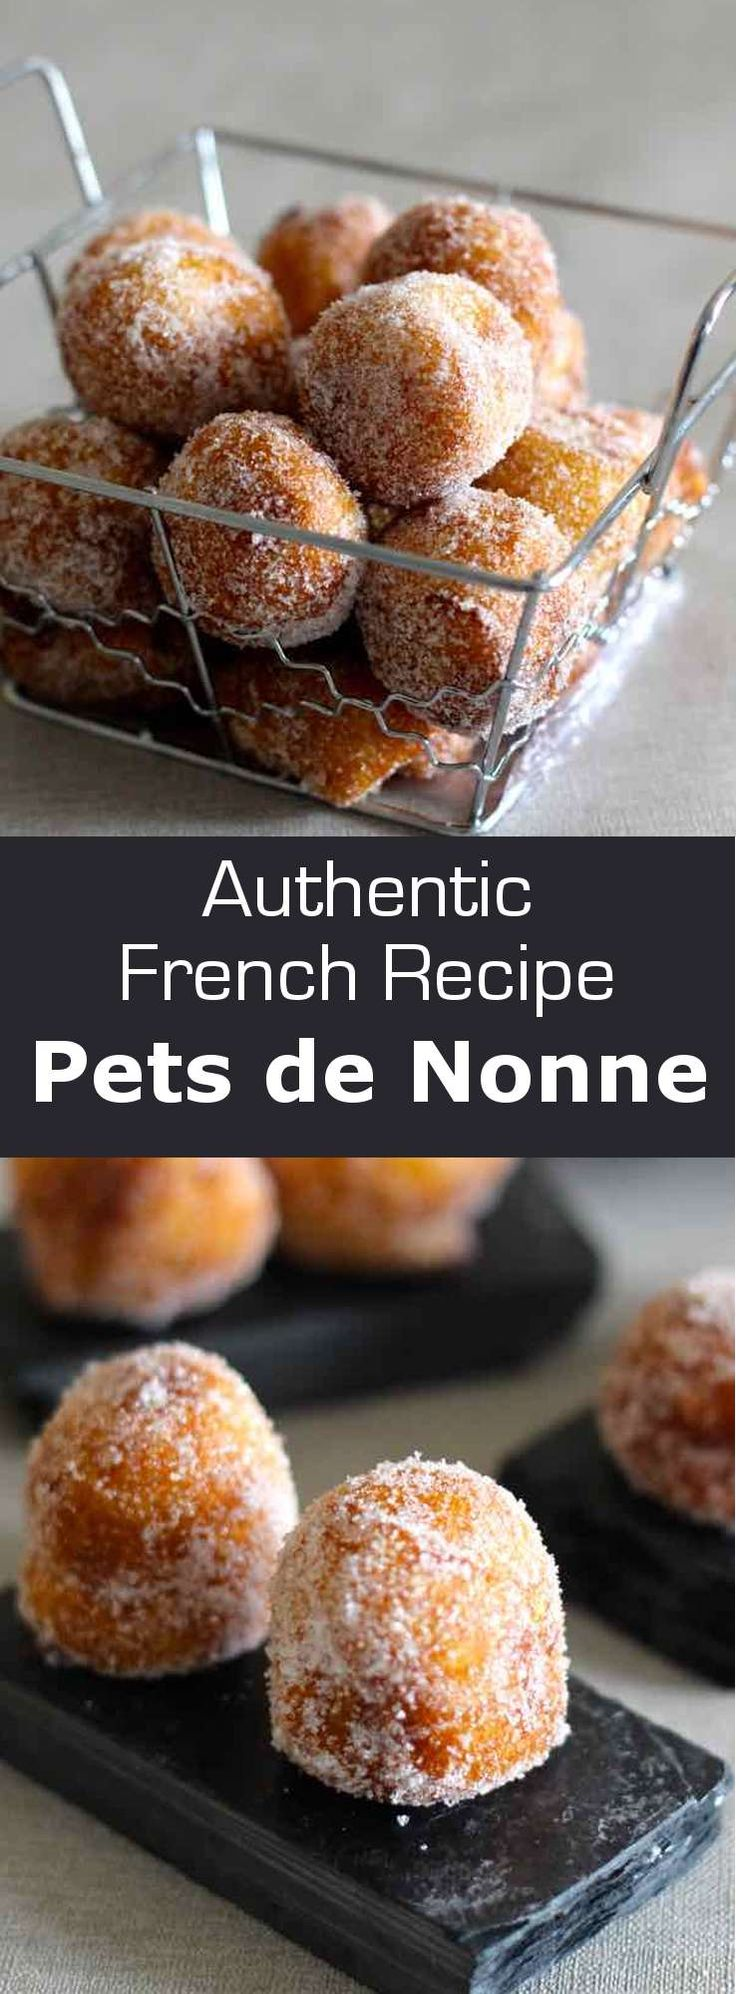 Nun's puffs are small beignets made of choux pastry consumed all year round, but also more particularly during Mardi Gras in France. #MardiGras #France #196flavors